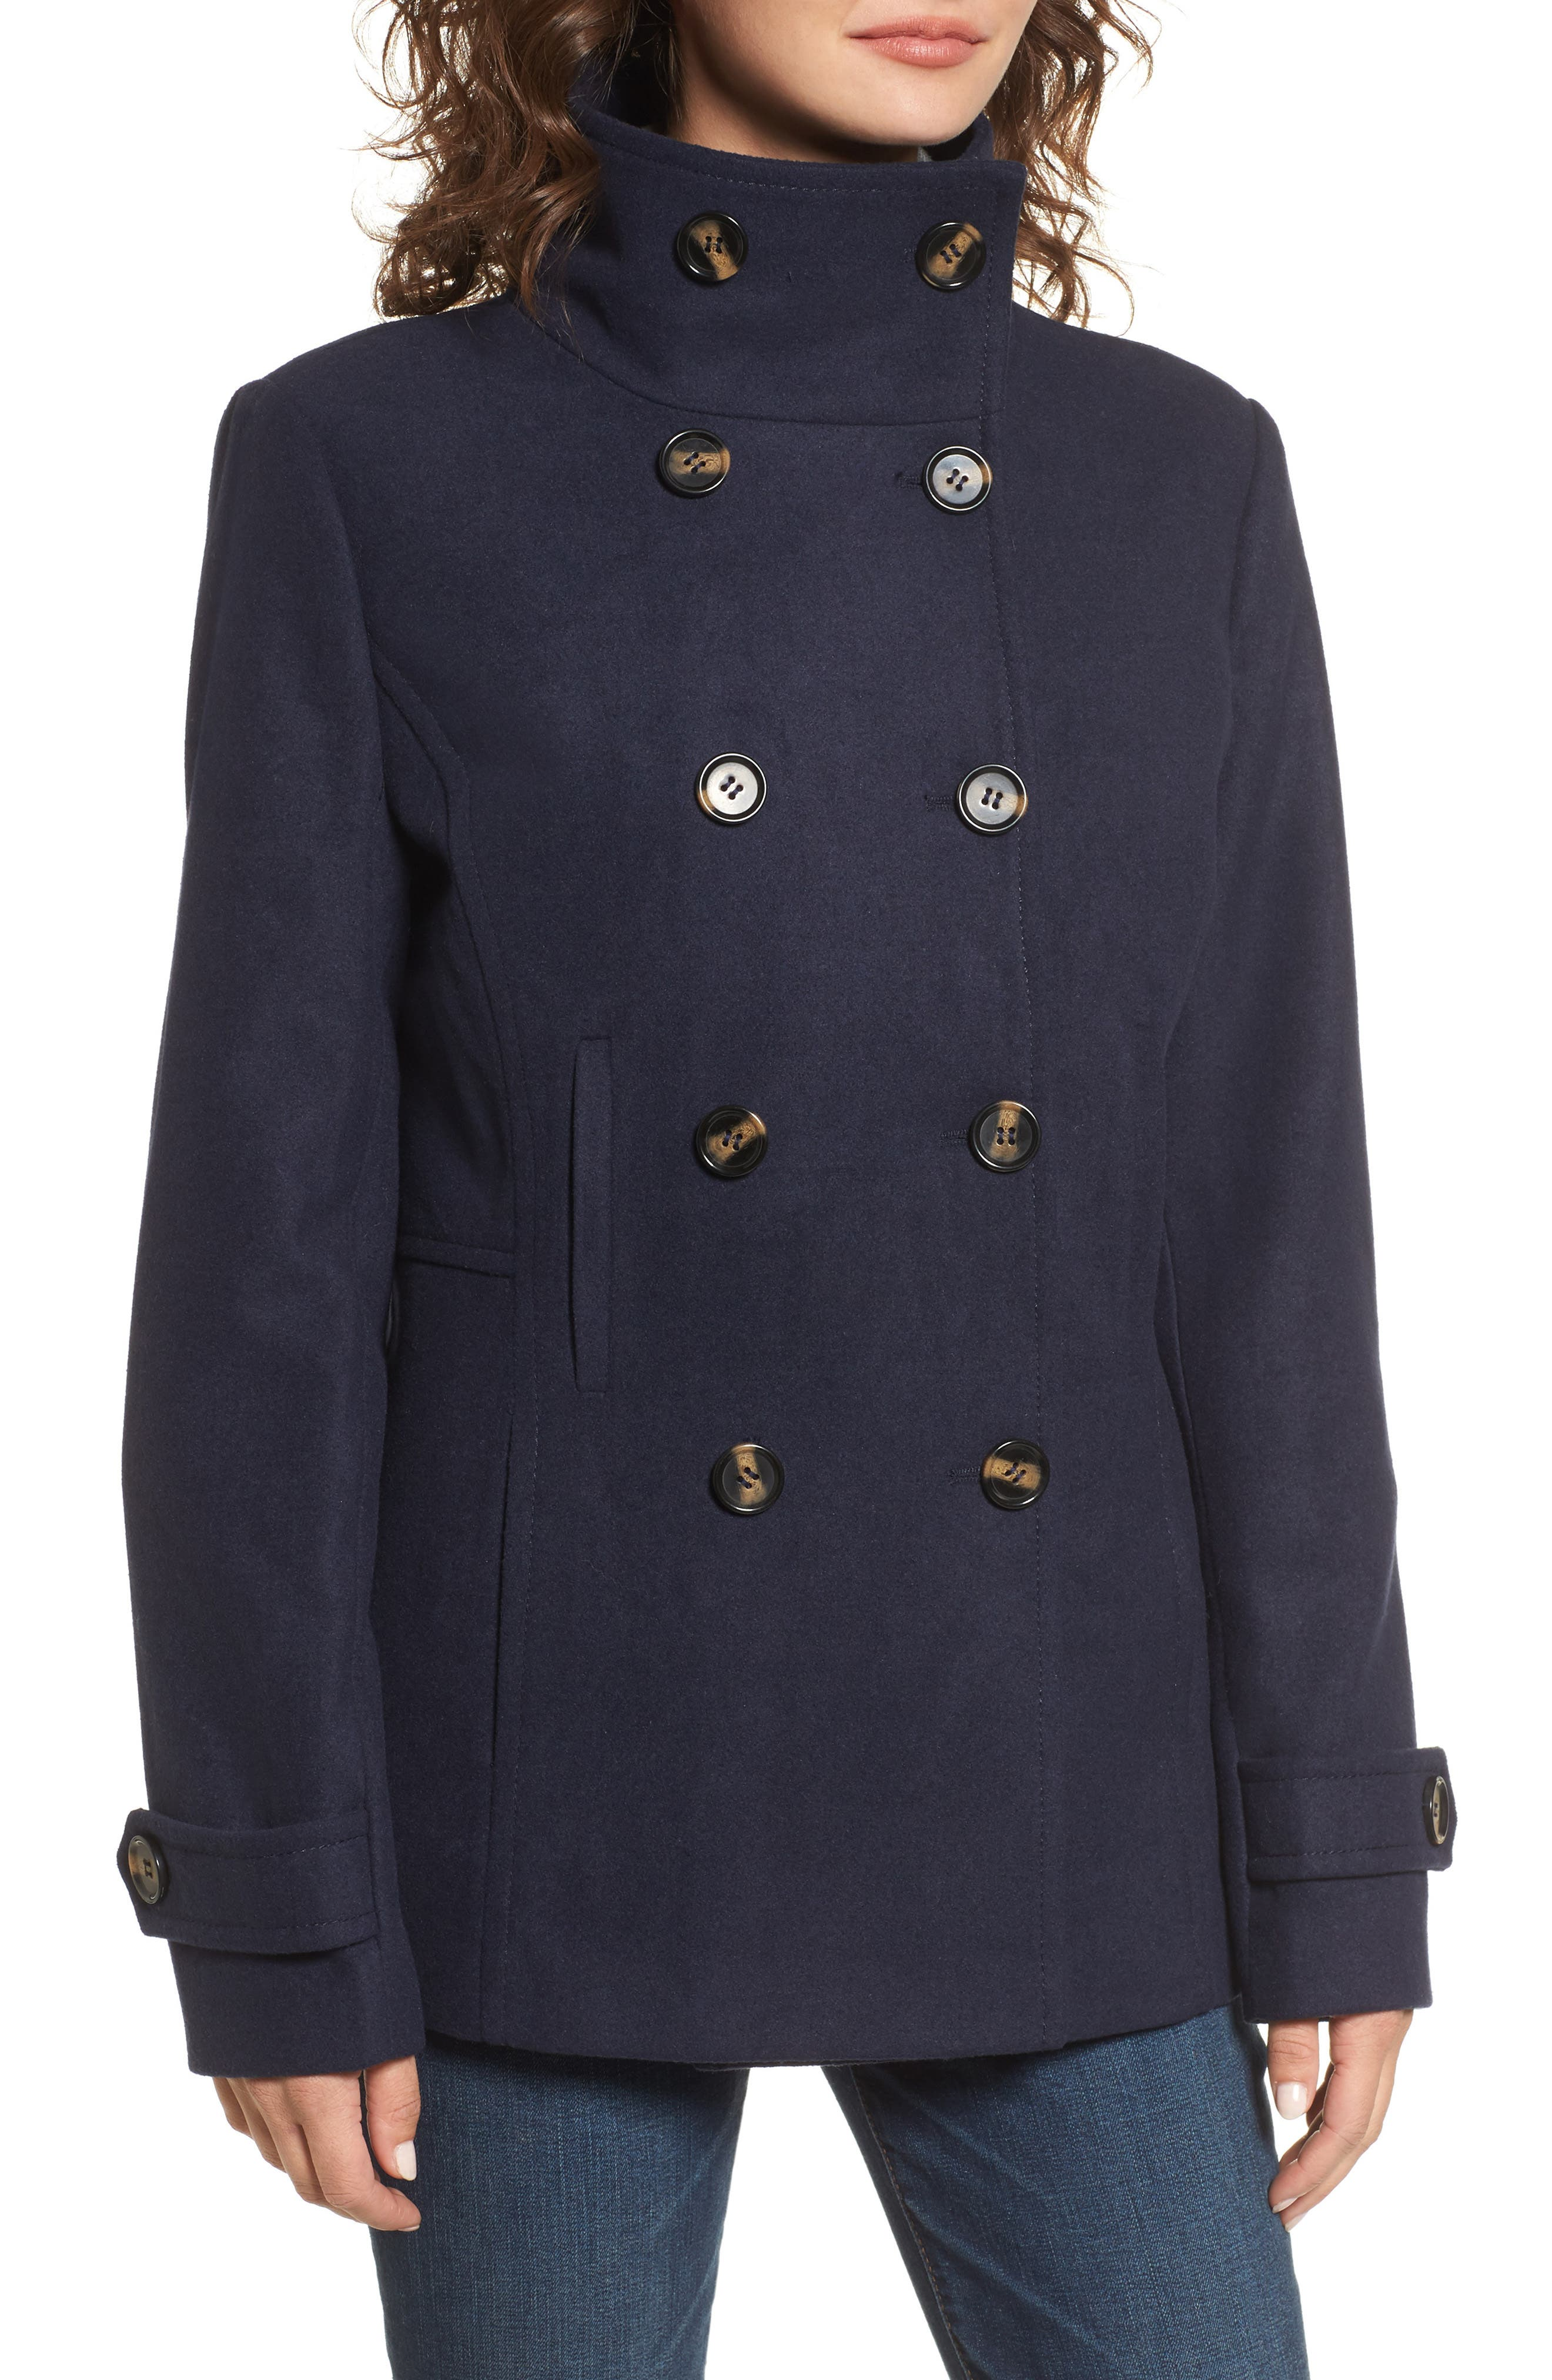 Alternate Image 3  - Thread & Supply Double Breasted Peacoat